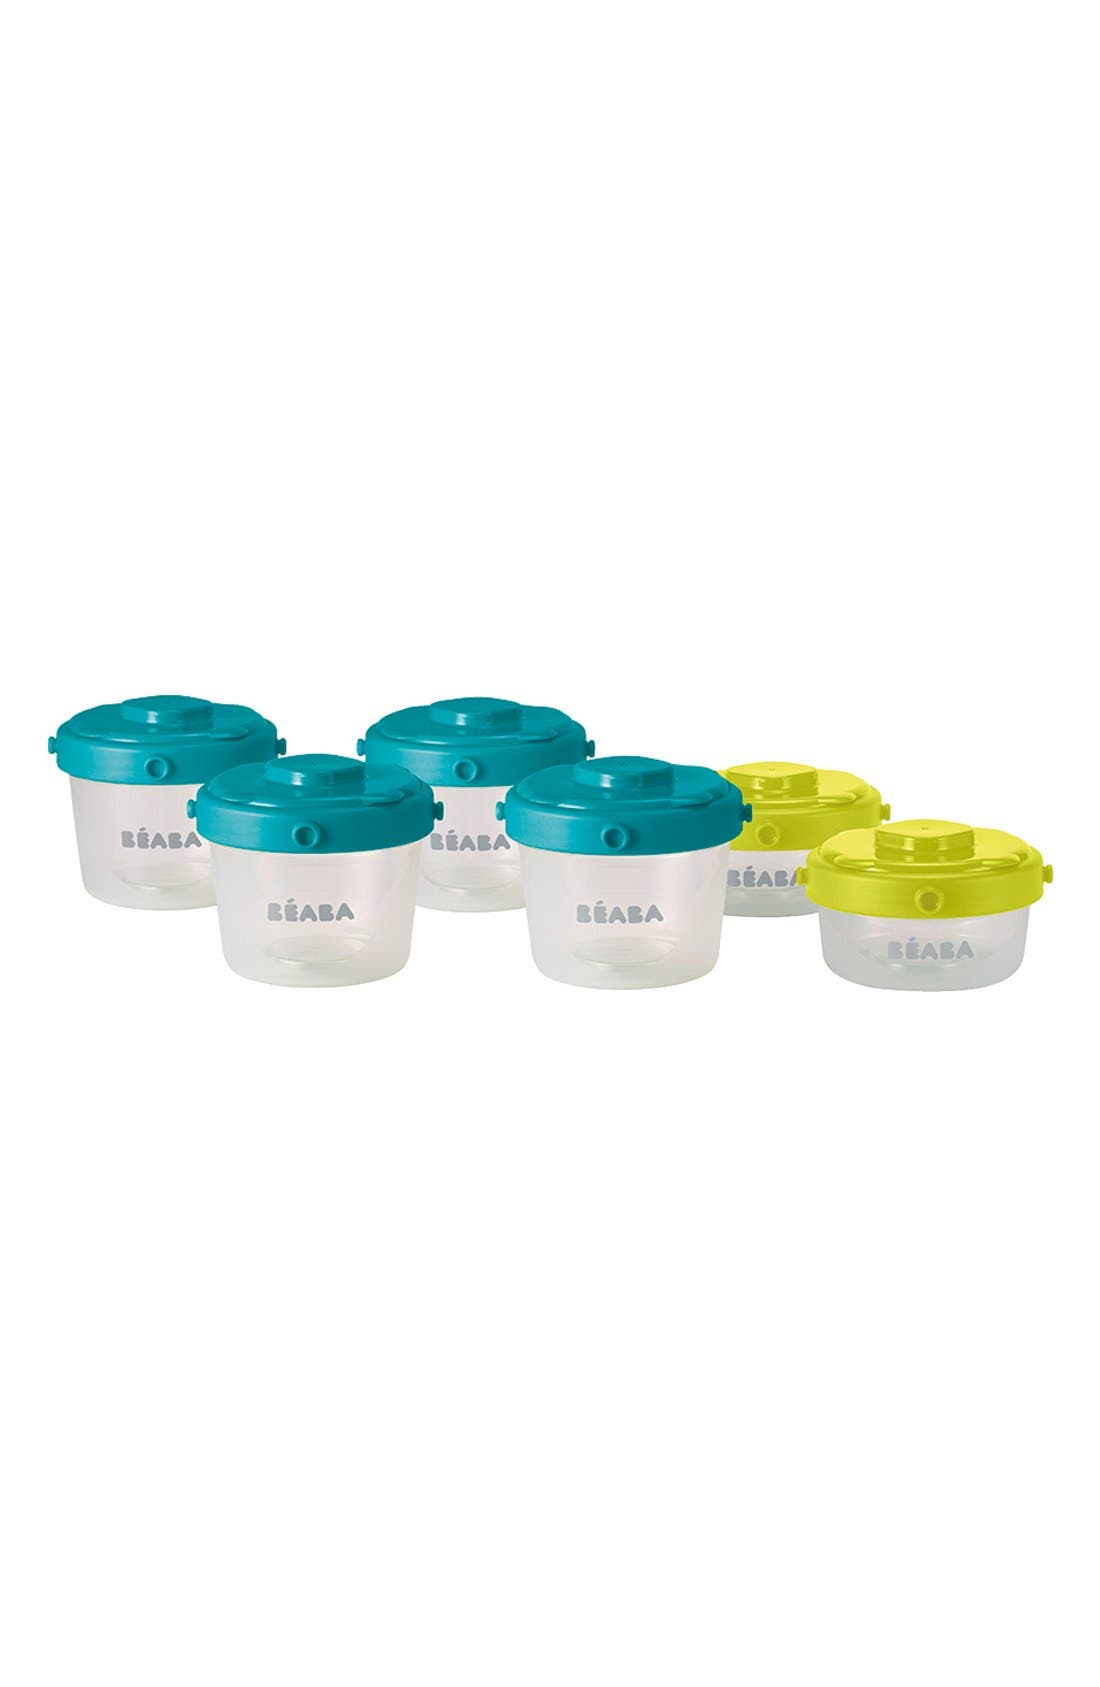 BÉABA Clip Portion Containers (6-Pack)